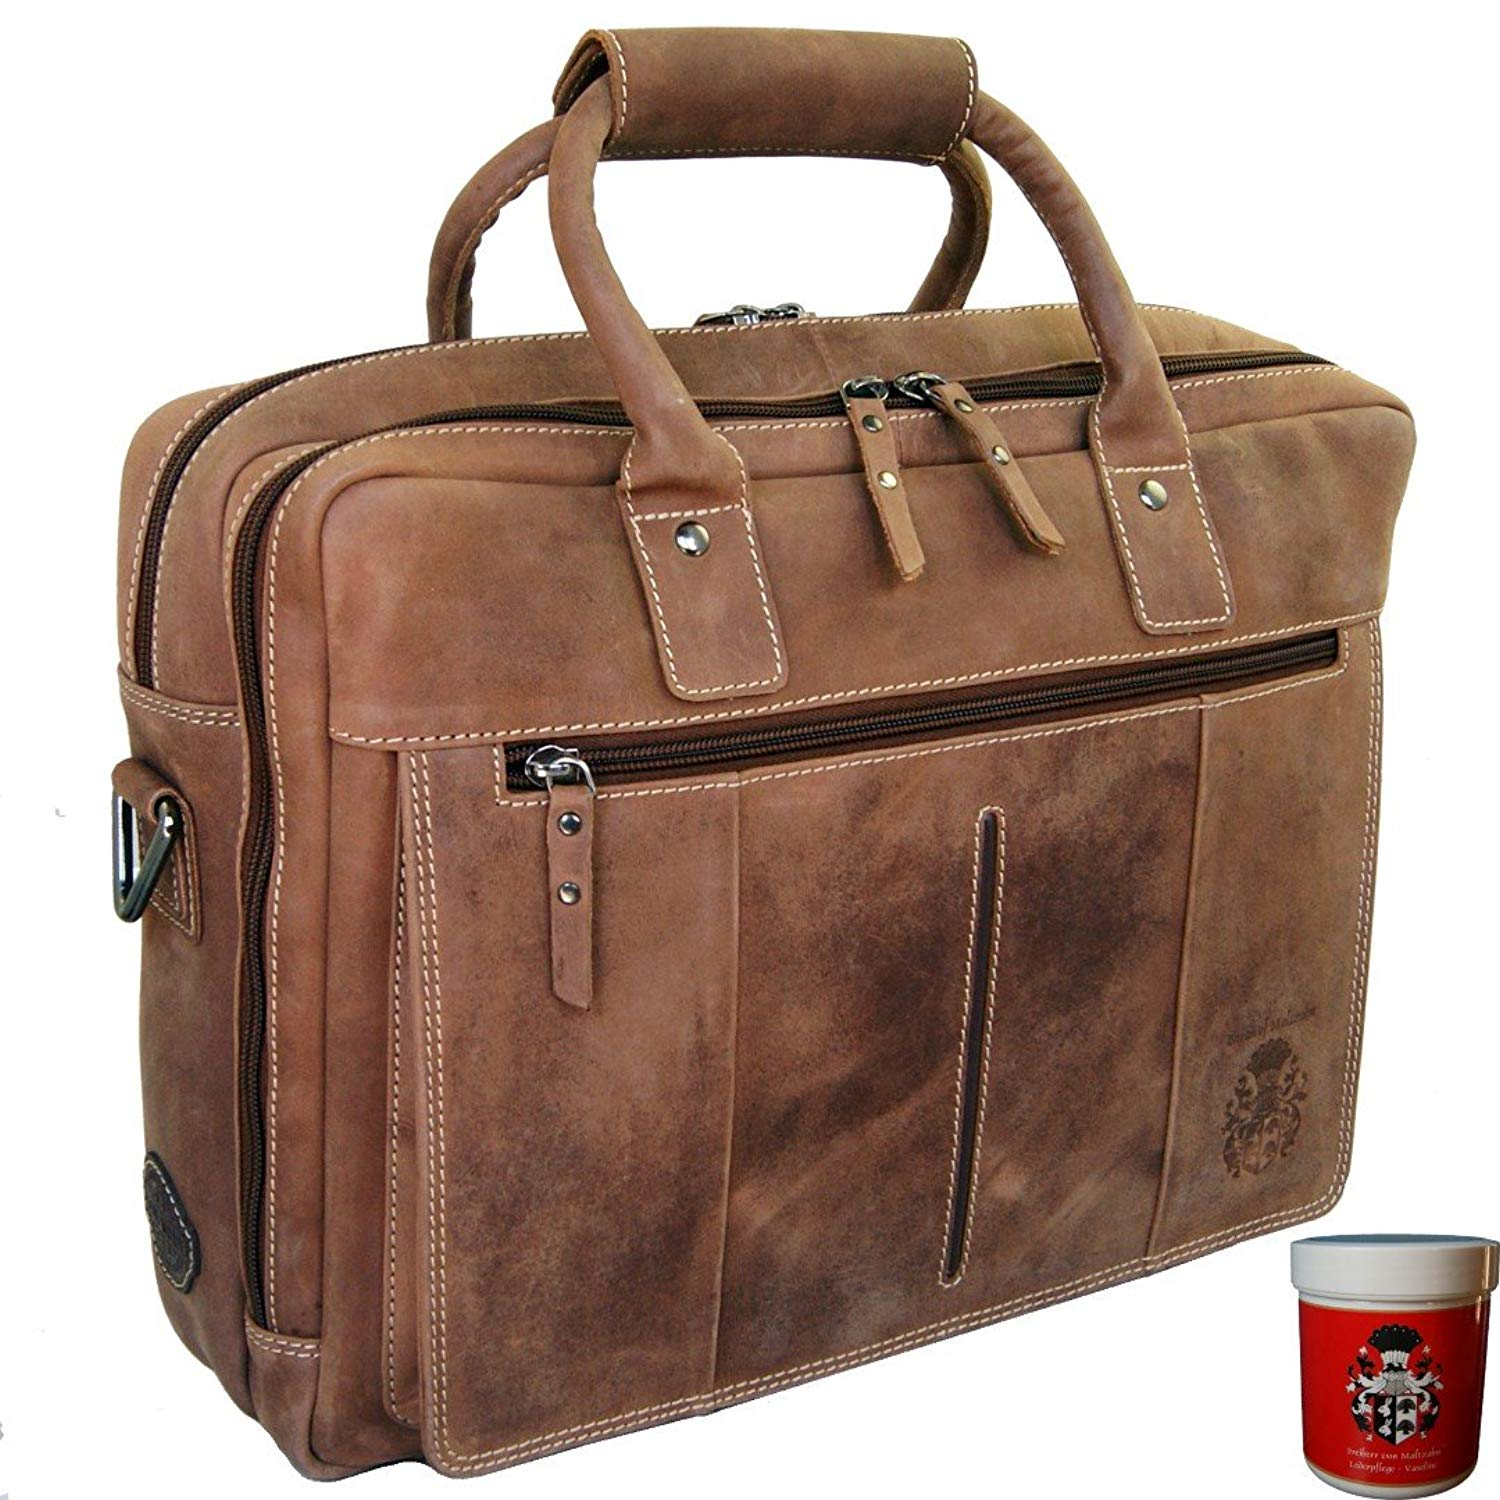 525088351689 Cheap Baron Leather Bag, find Baron Leather Bag deals on line at ...